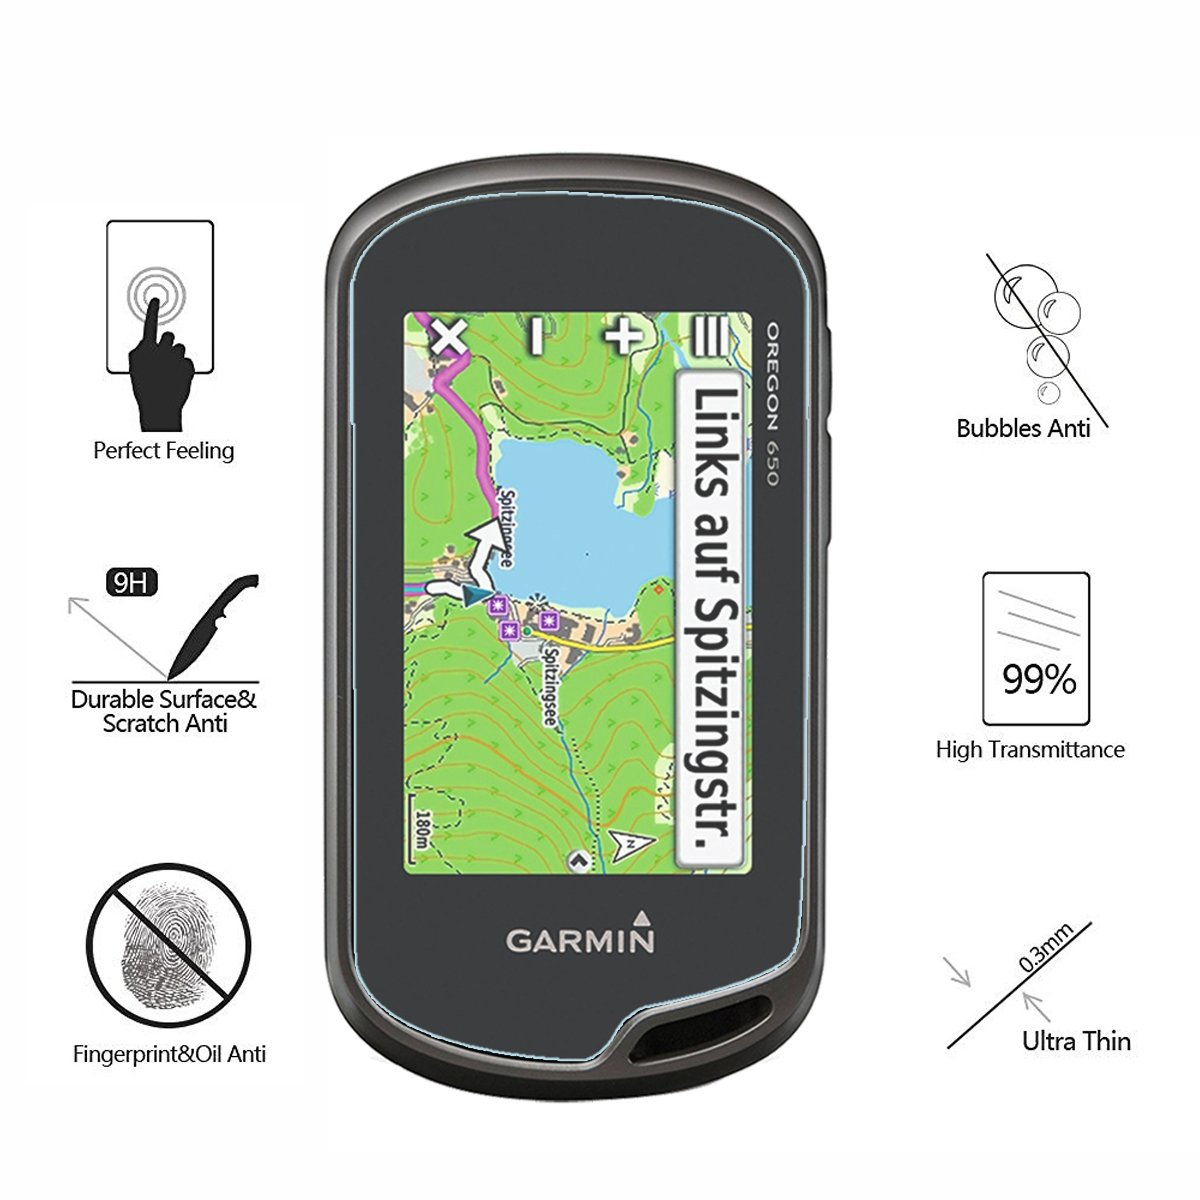 t Tempered Glass Screen Protector for Garmin Oregon 600 Akwox 0.3mm 9H Hard Scratch-resistant Screen Protector for Garmin Oregon 600 600t 650 650t 750 AK-GL078 // 750 GPS t // 650 Pack of 4